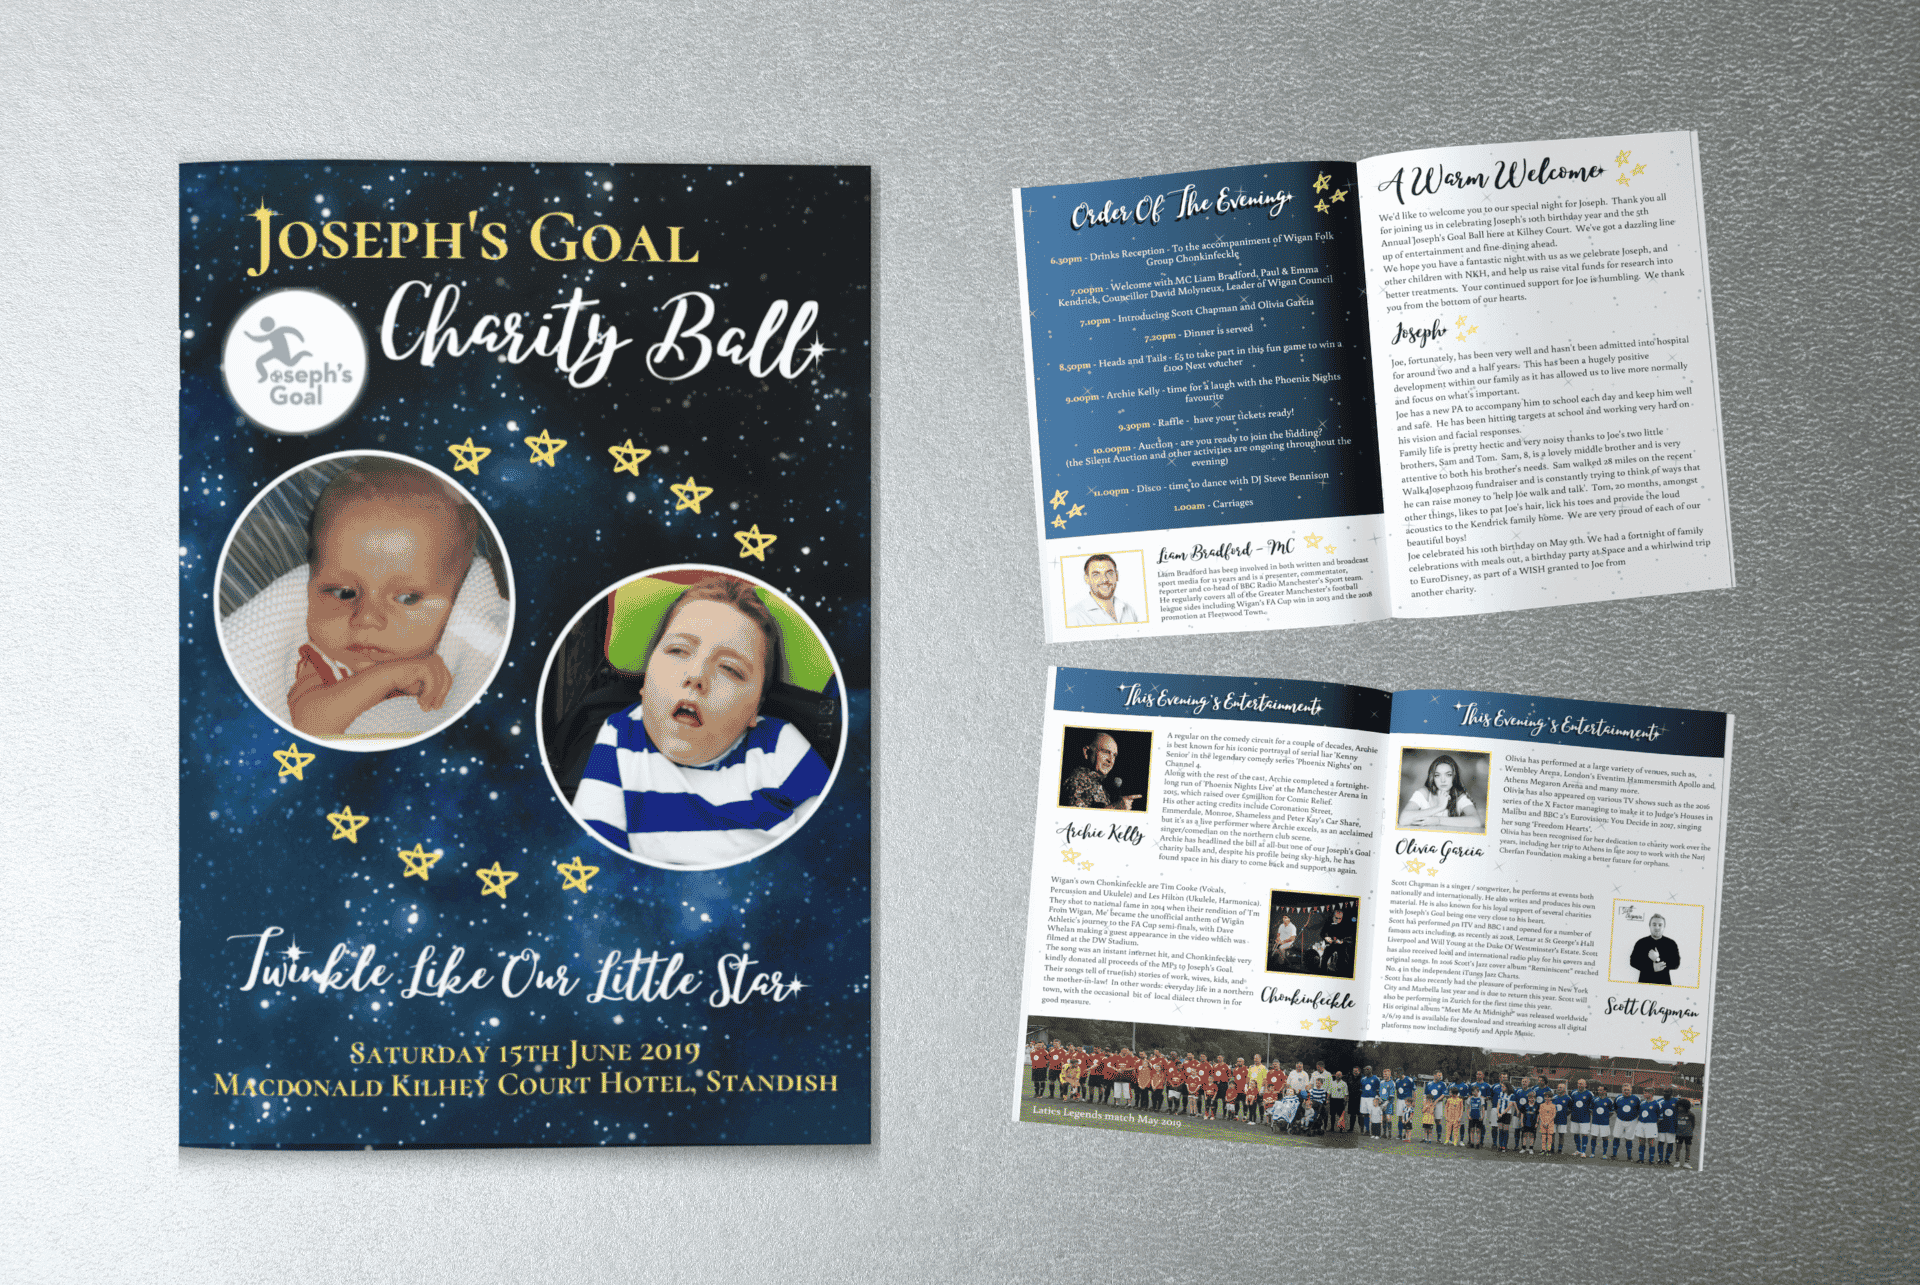 Image shows the event program for Joesph's Goal Ball 2019